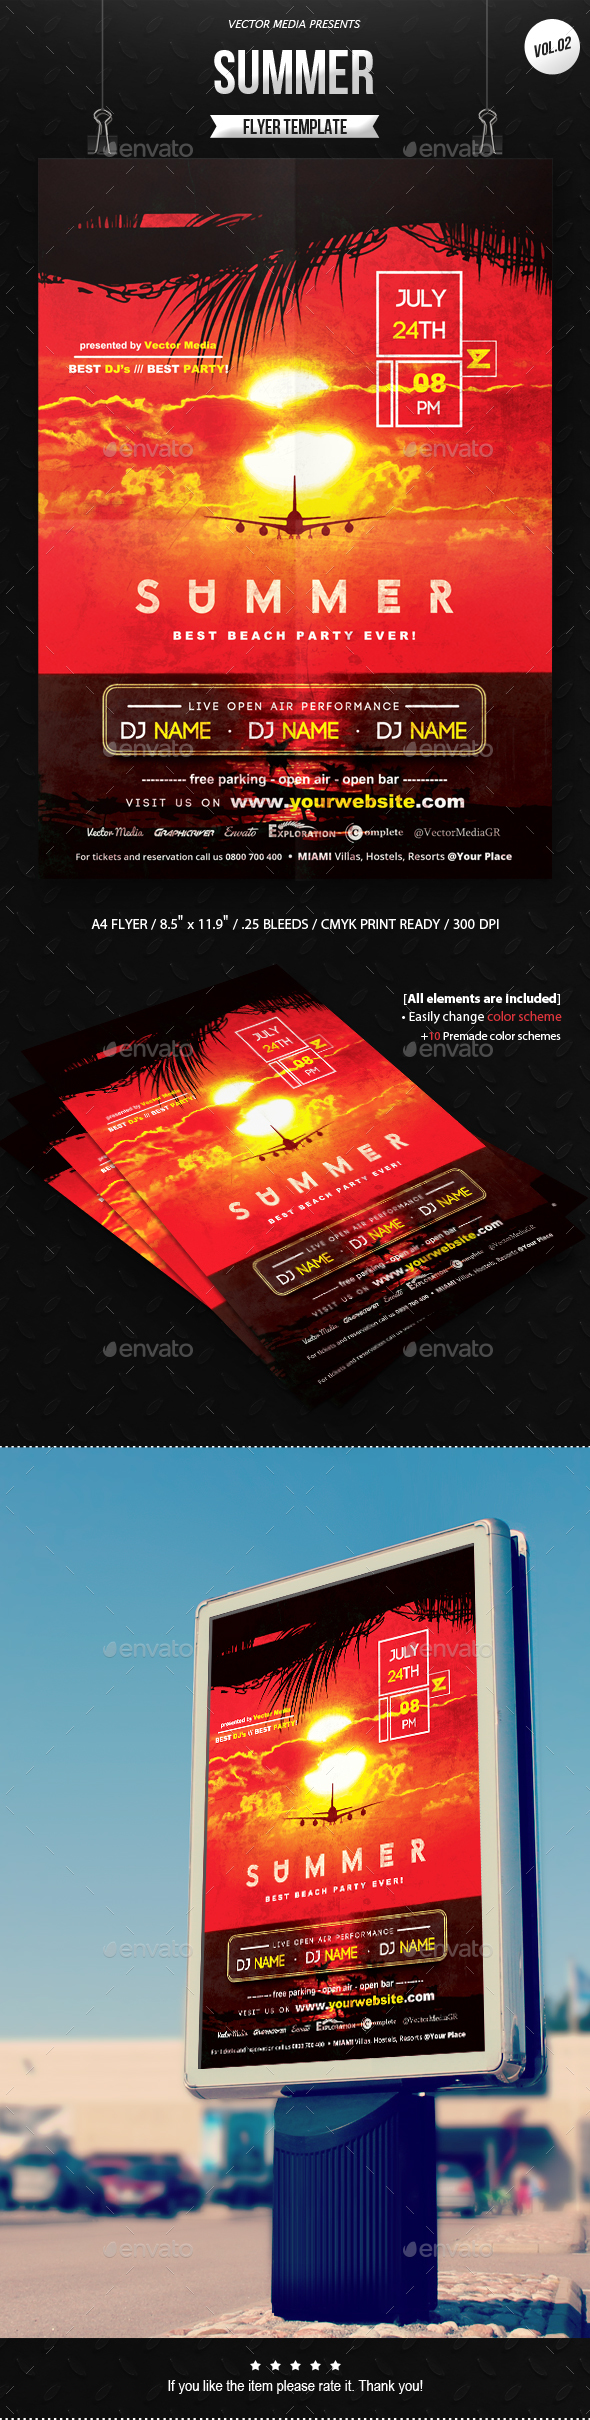 Summer - Flyer [Vol.2]